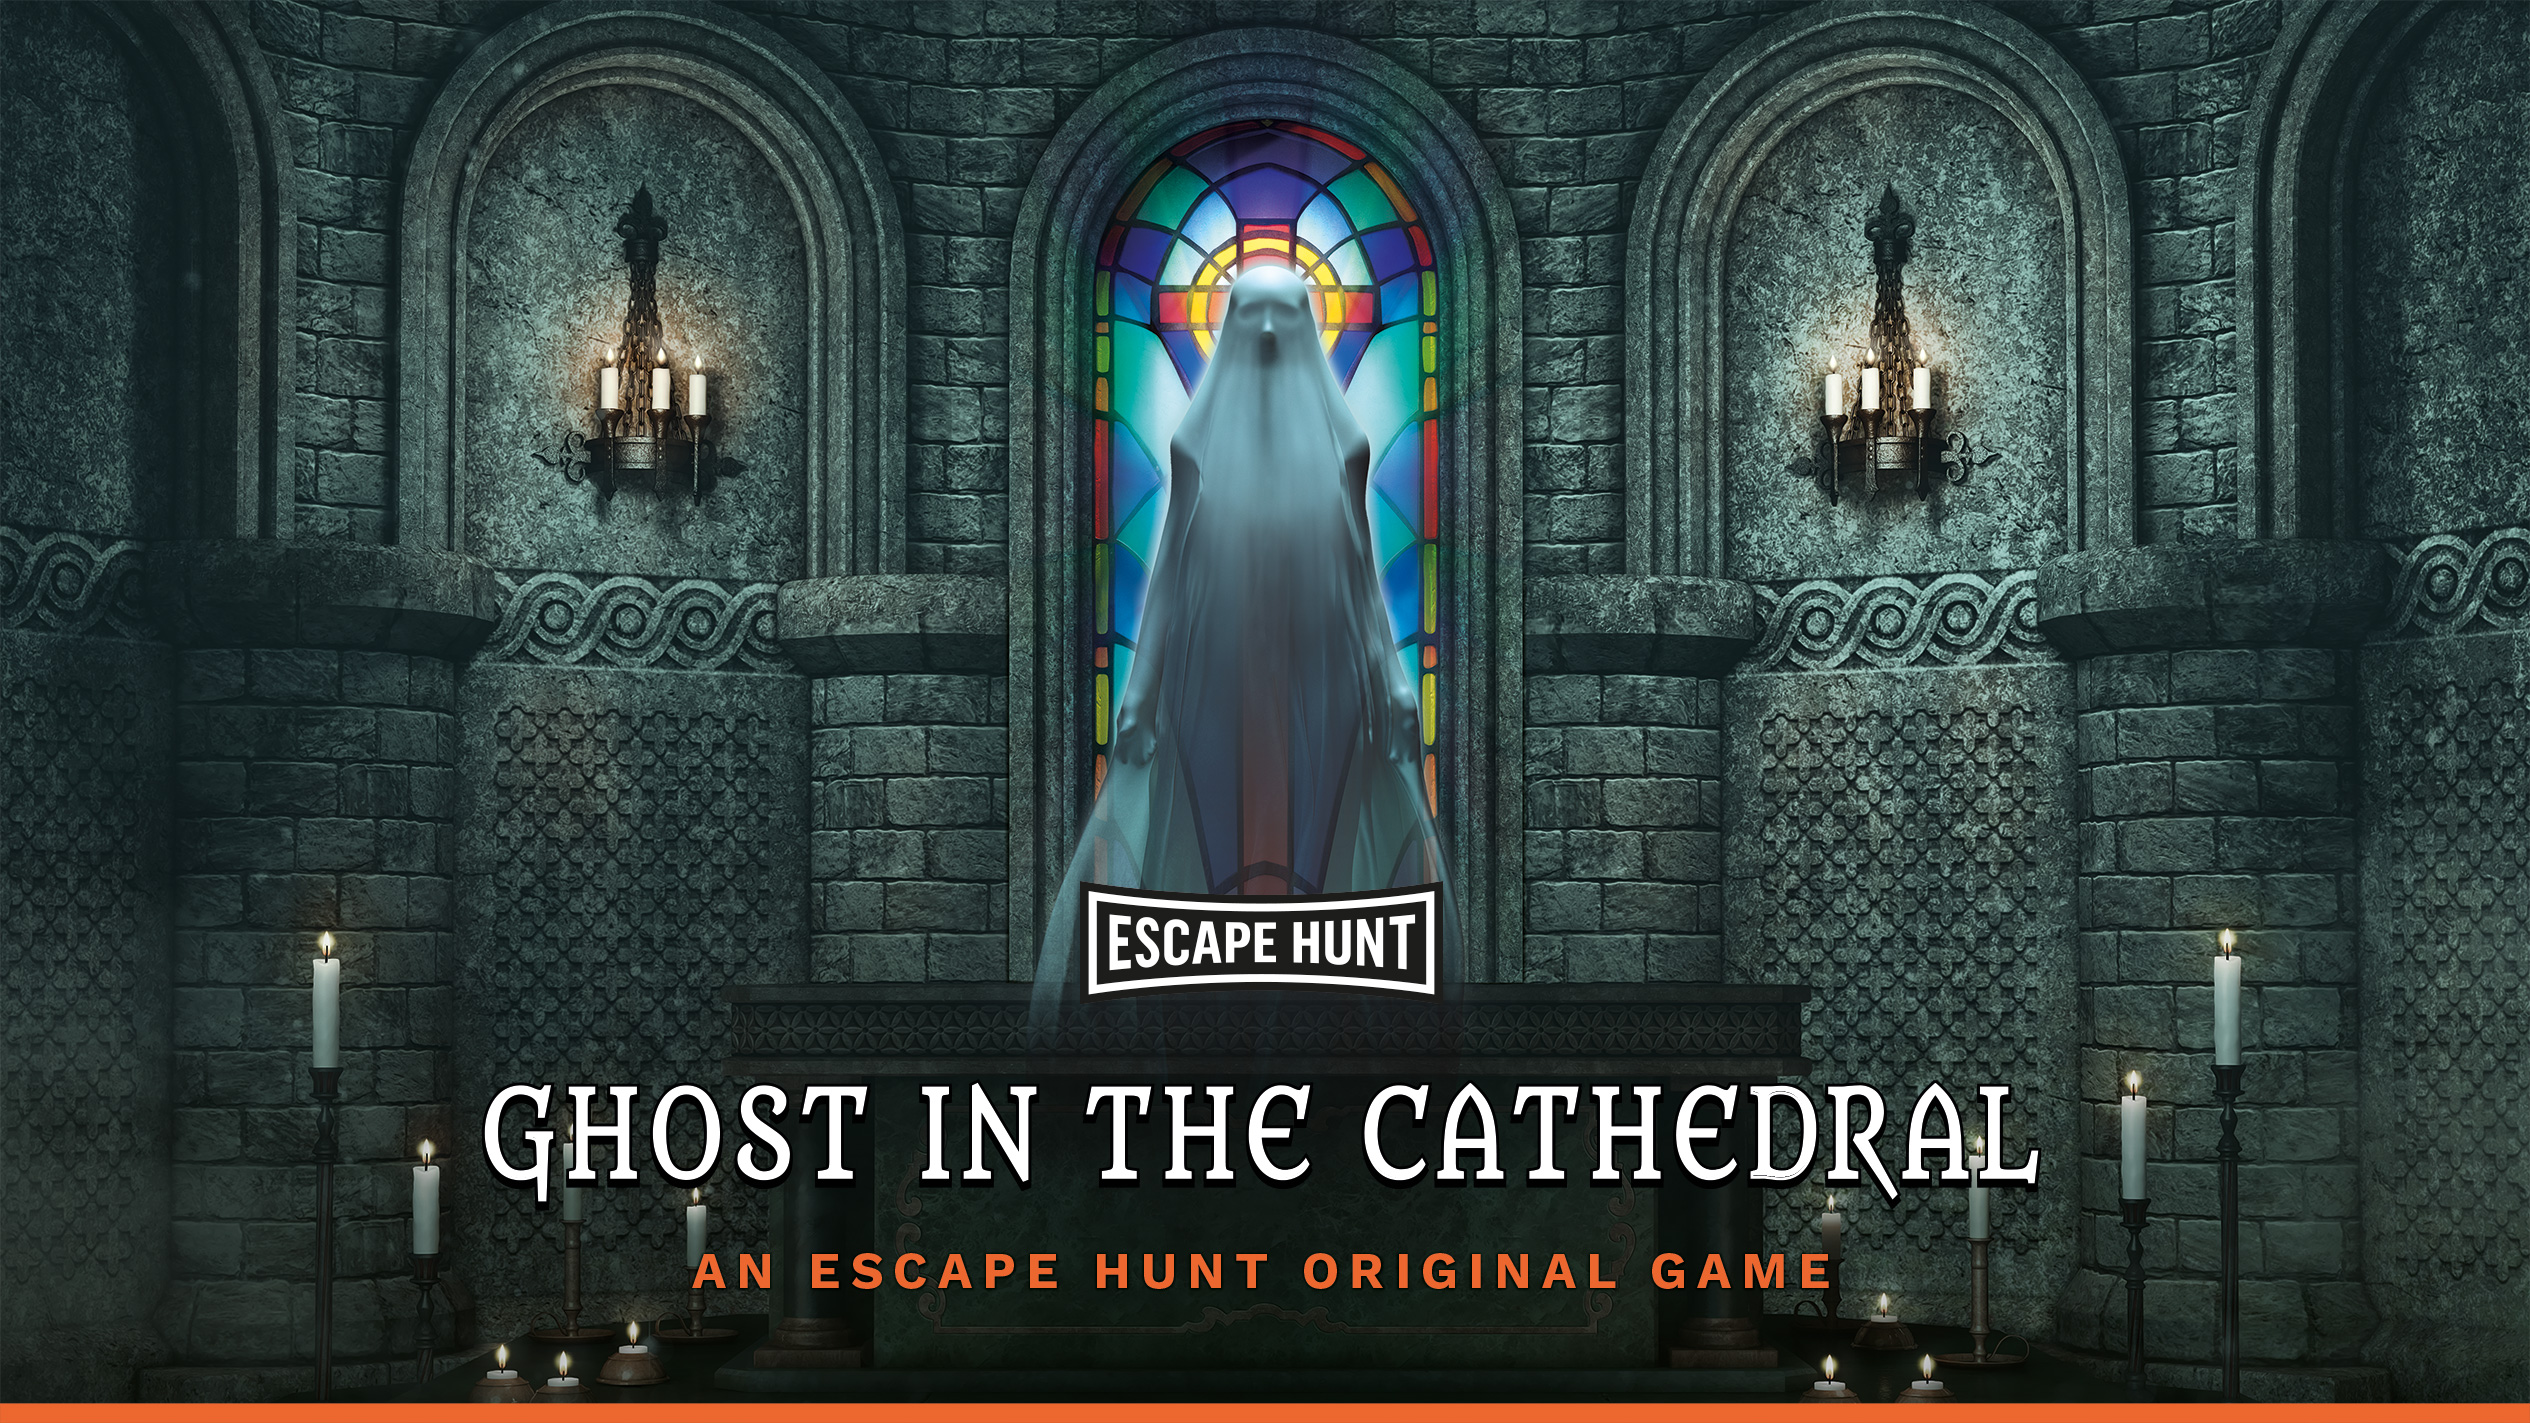 Escape Hunt Clermont Ferrand - Escape Game Clermont Ferrand Ghost in the Cathedral